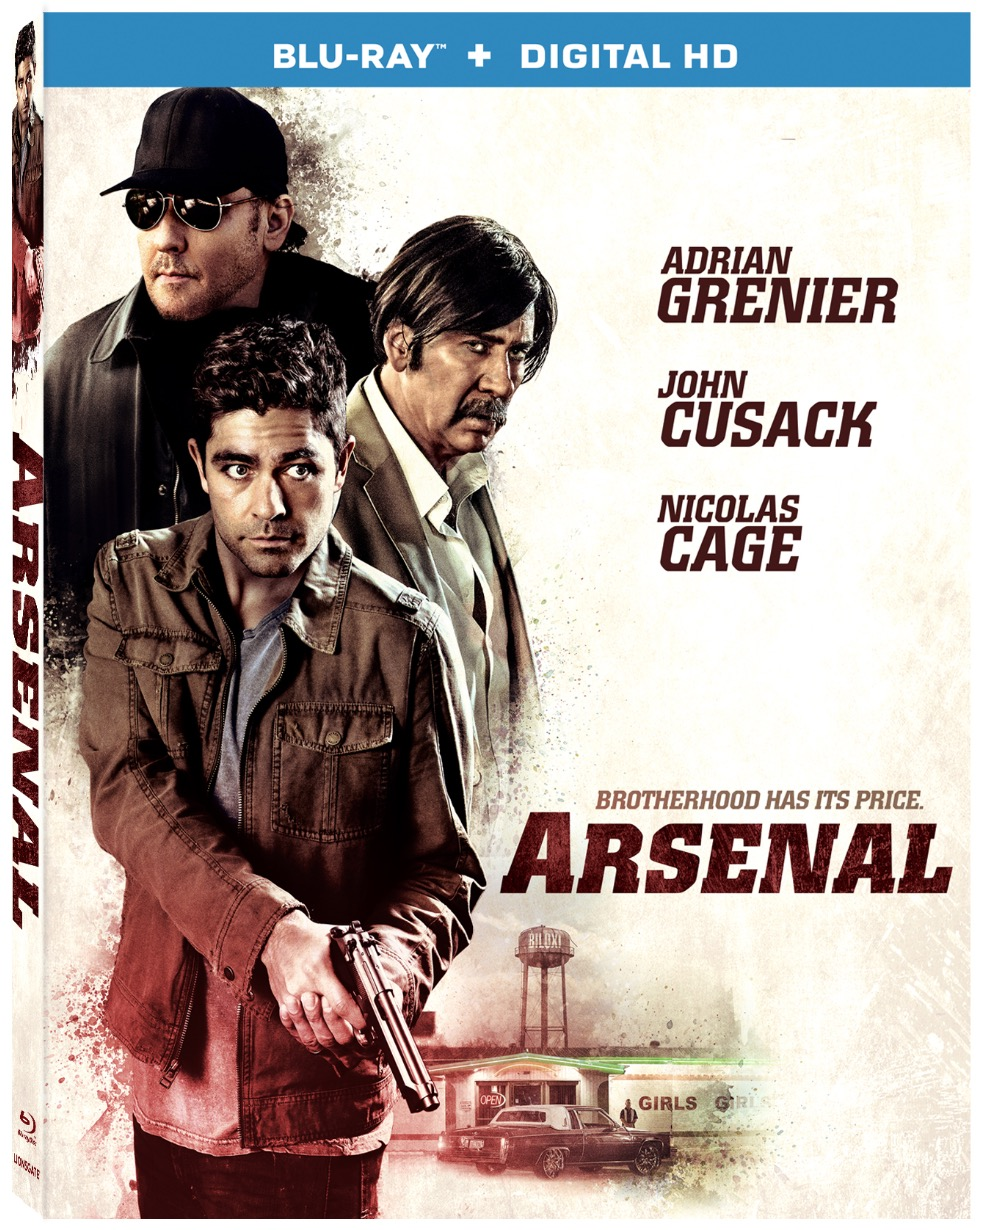 Arsenal Blu-ray Review